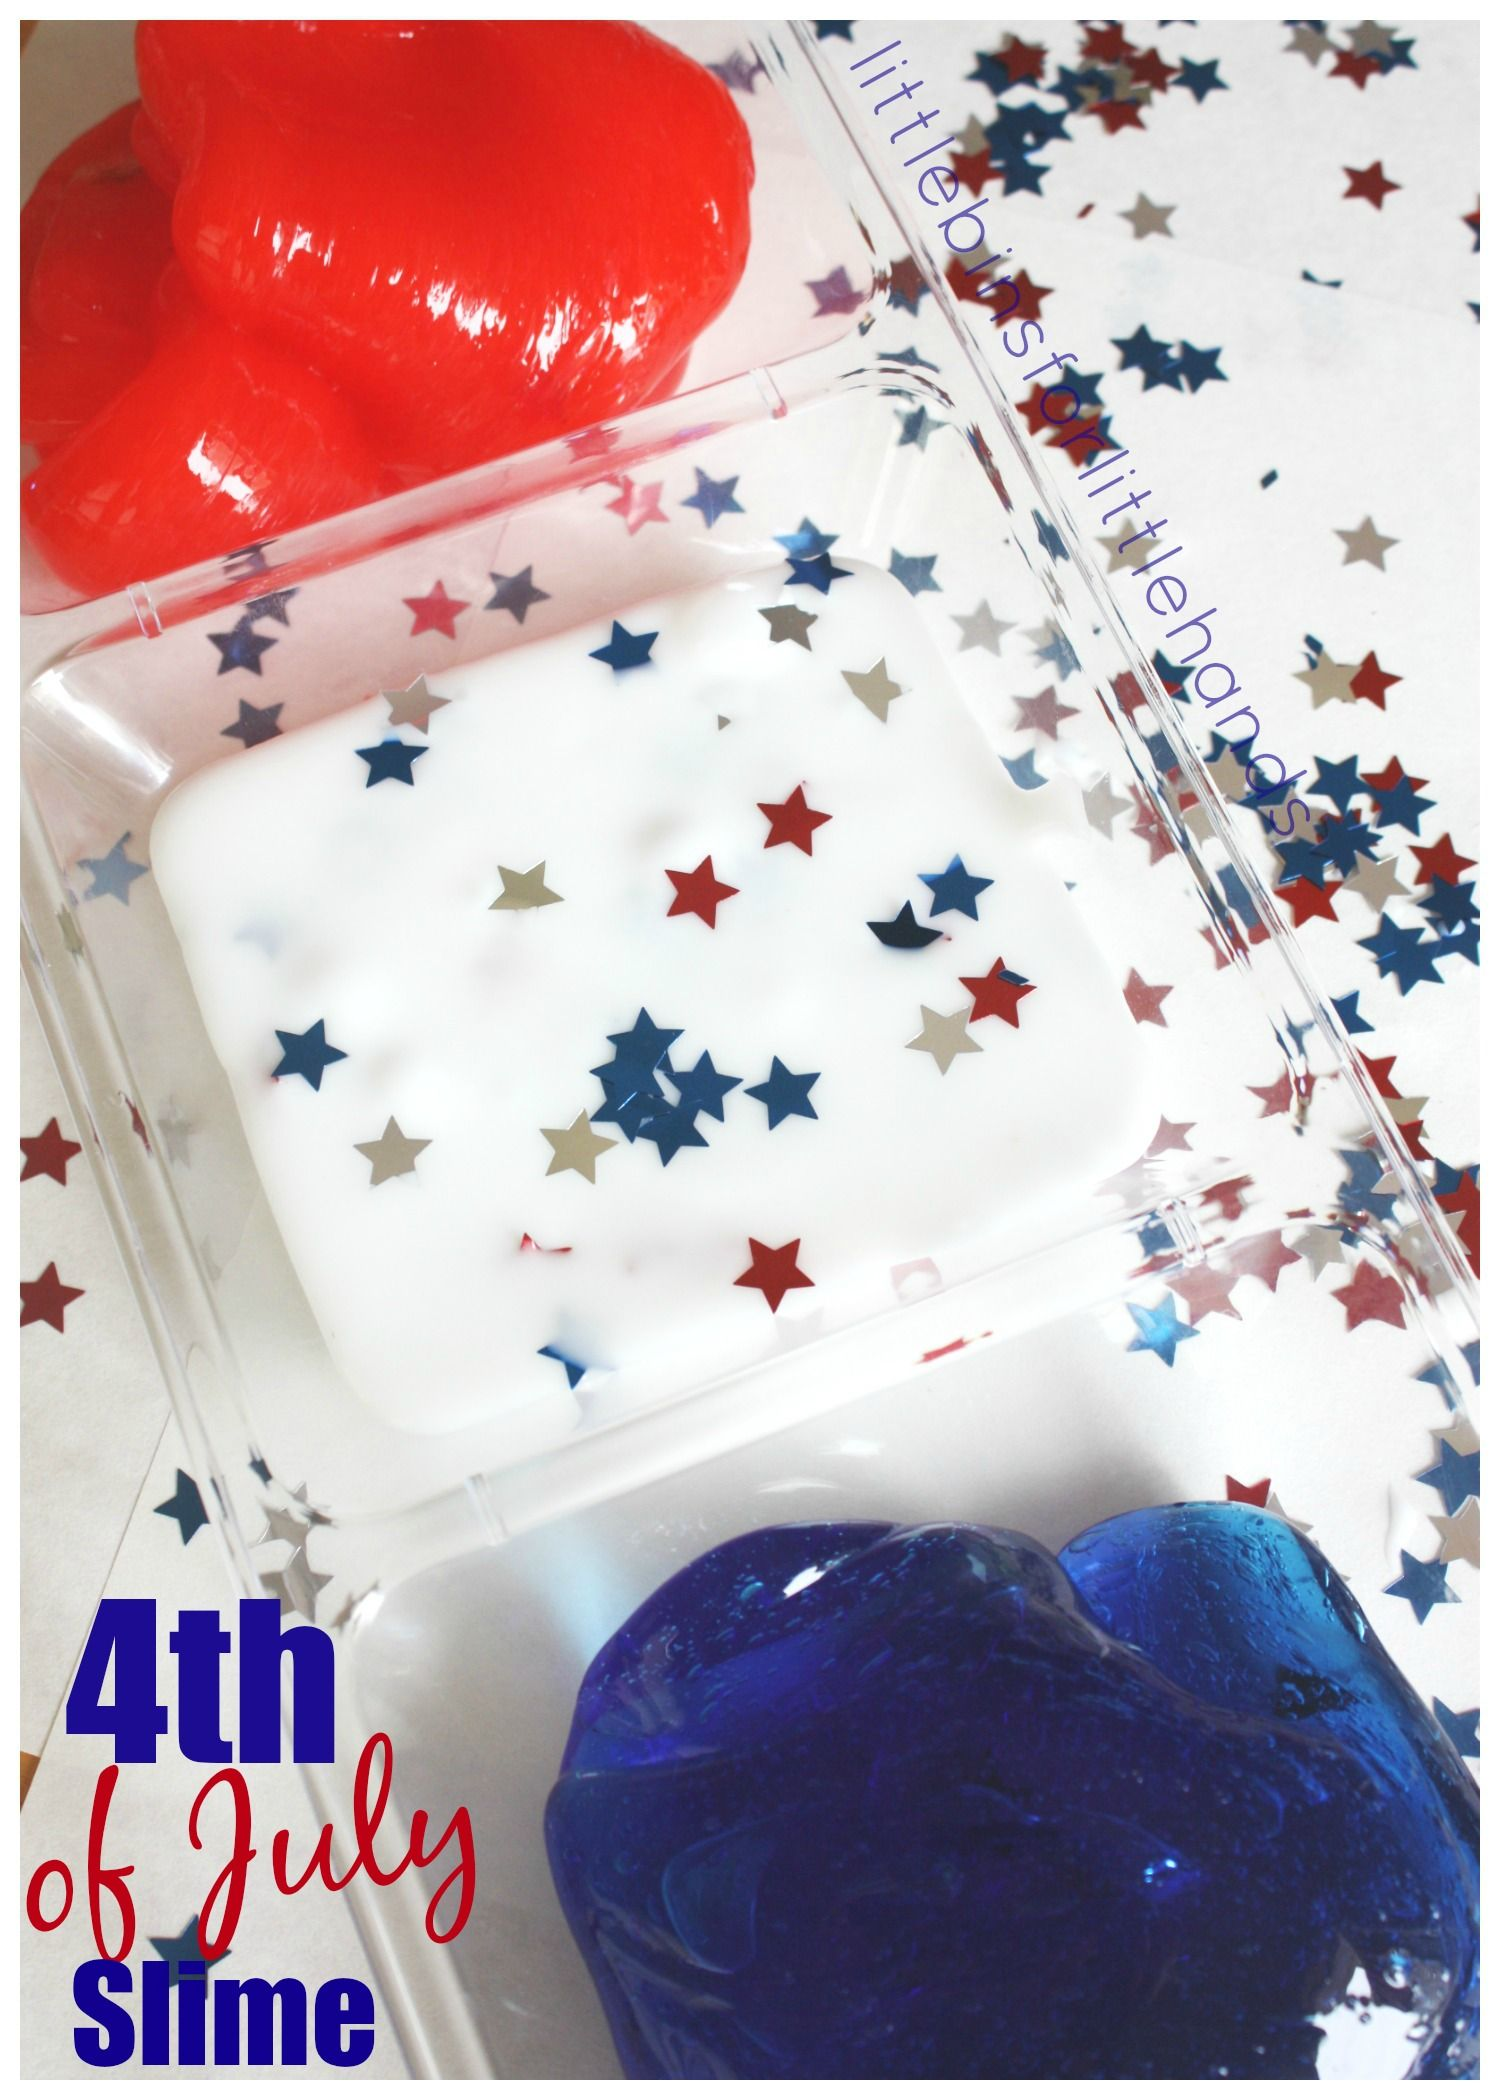 How To Make 4th Of July Slime For Summer Science